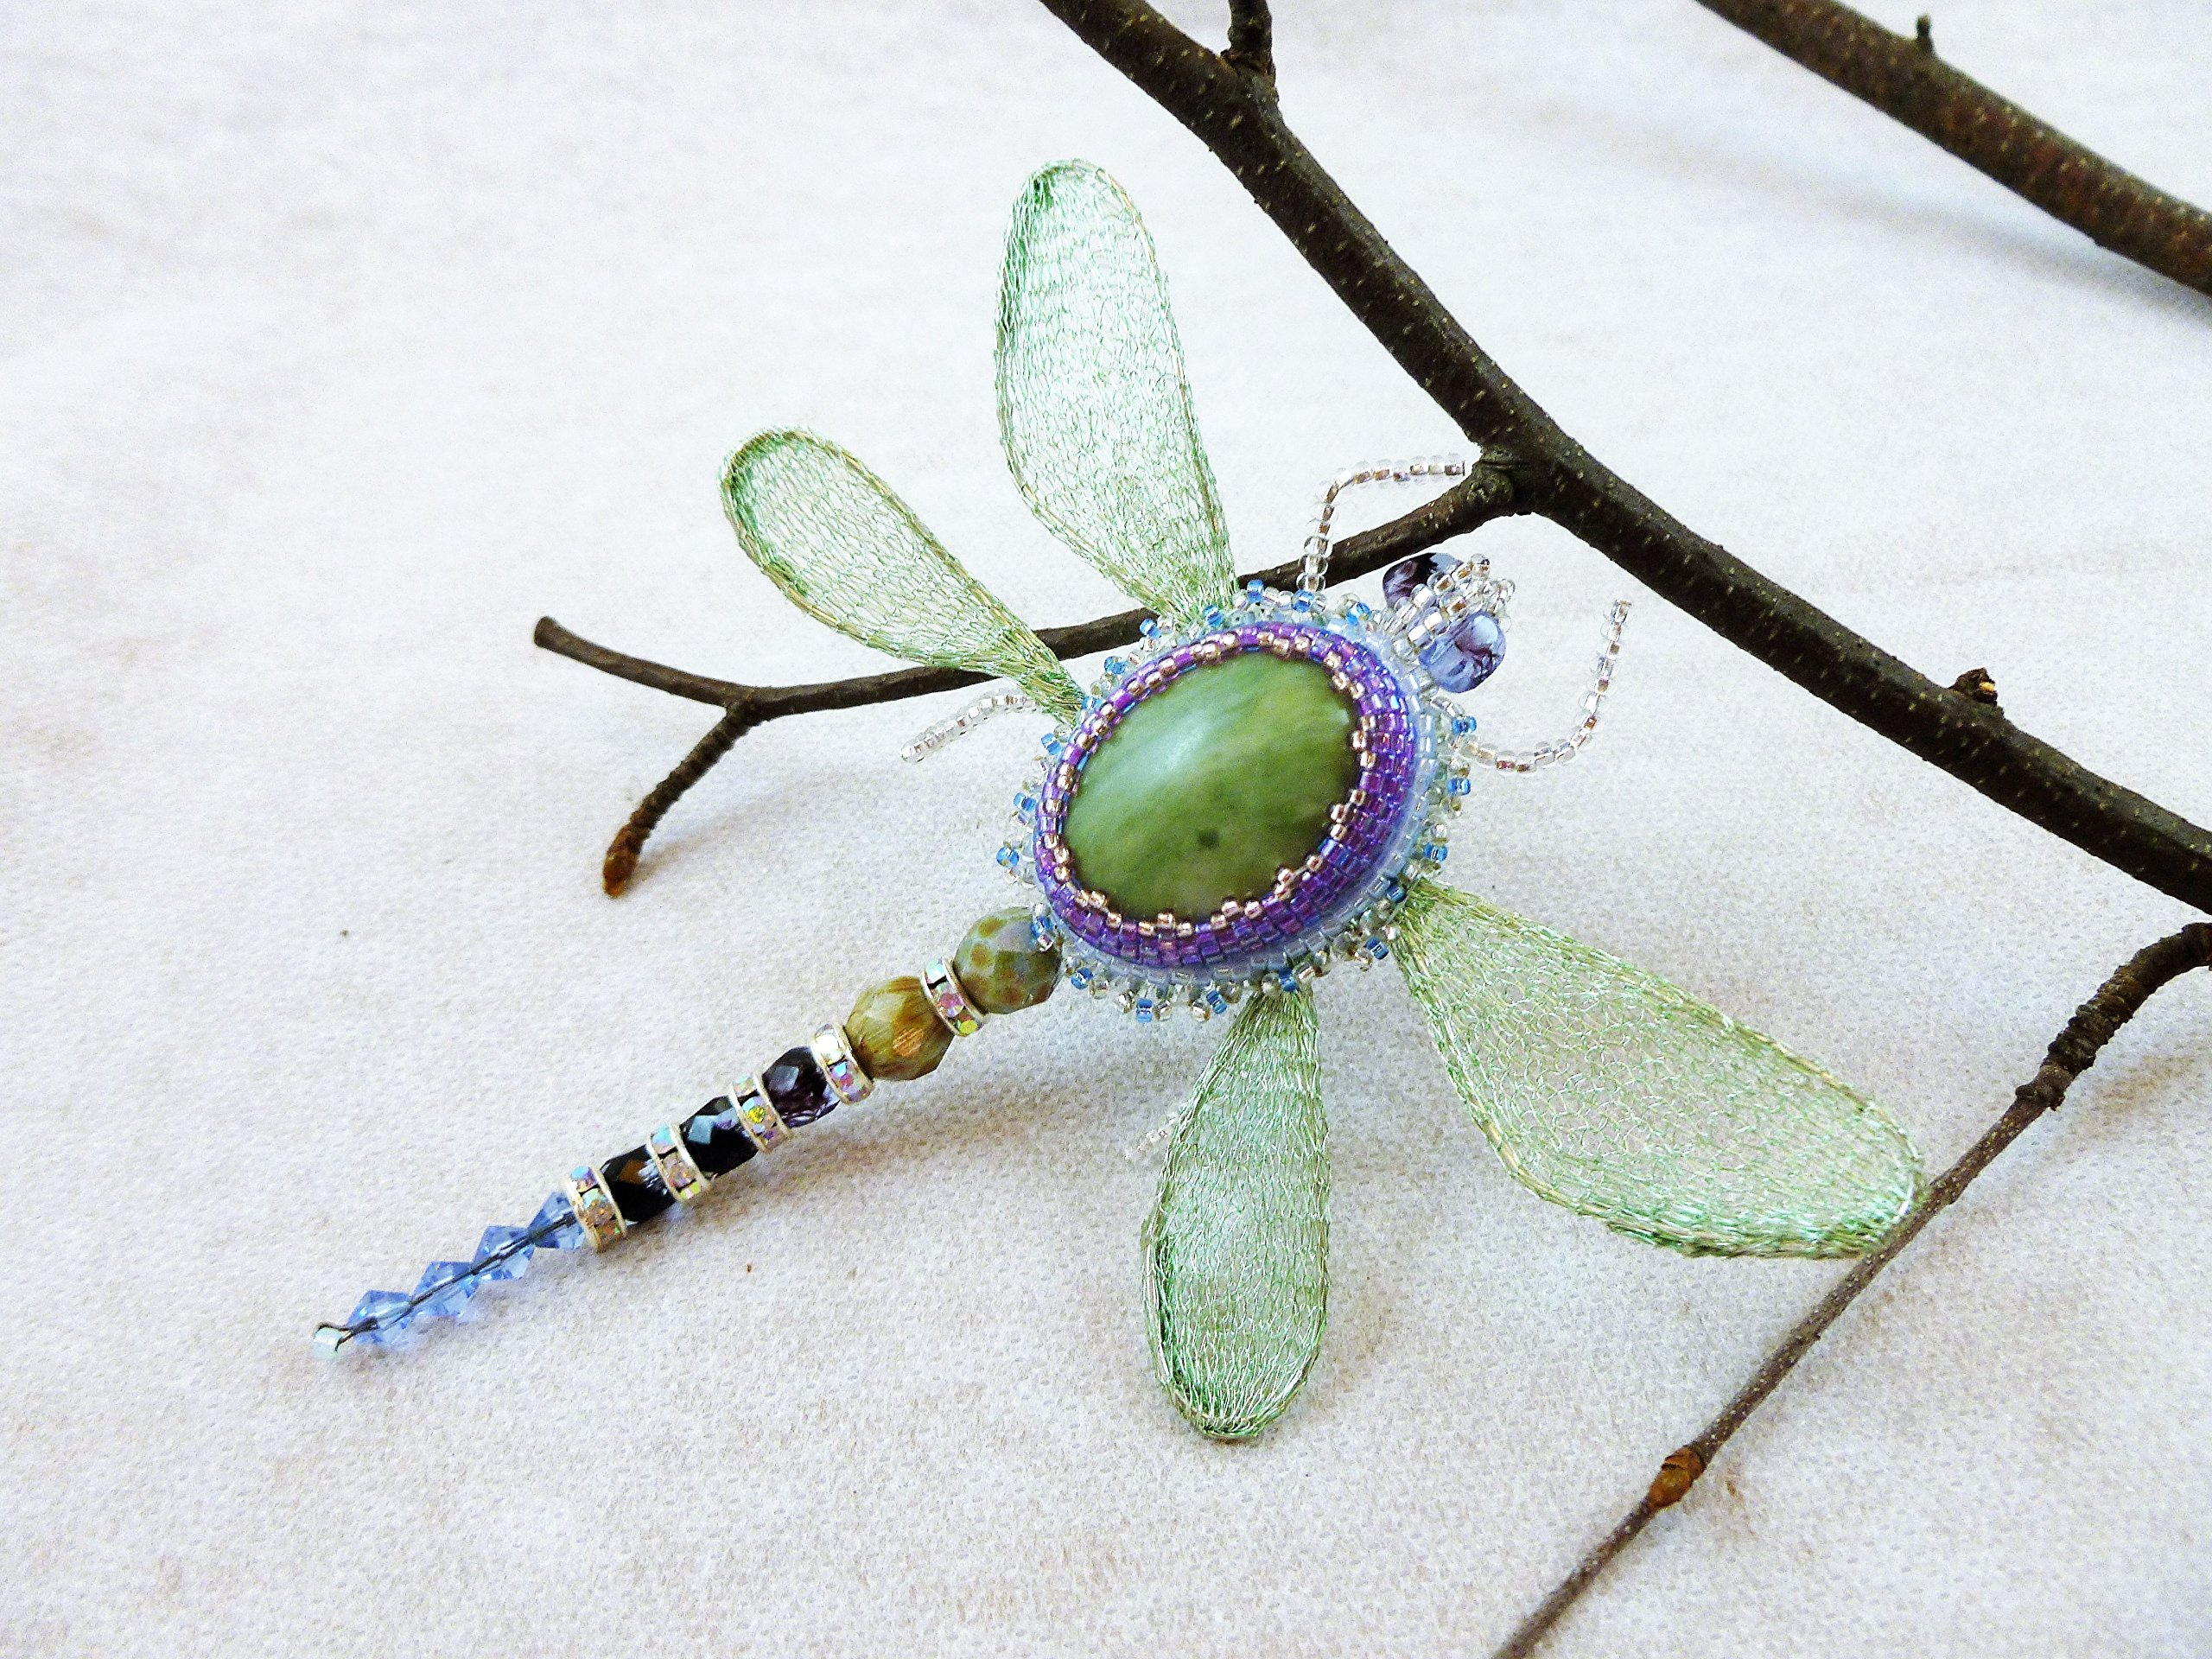 Dragonfly Brooch, insect jewelry, Natural gemstone Dragonfly brooch, OOAK Dragonfly pin, Insect pin, Insect Brooch with fancy jasper